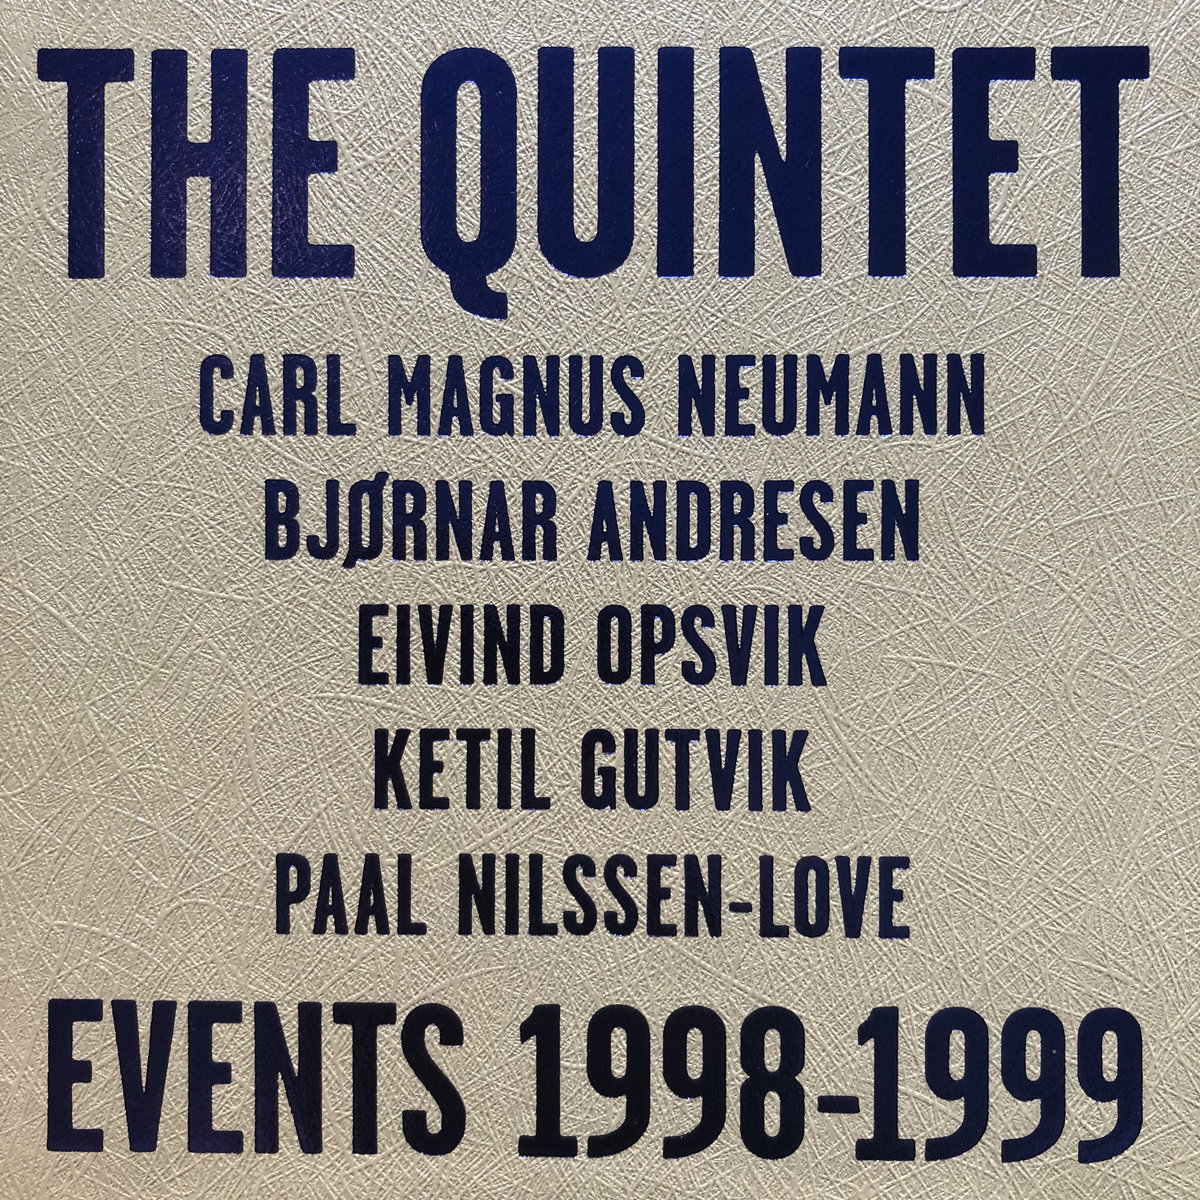 「THE QUINTET(PAAL NILSSEN-LOVE) / EVENTS 1998-1999」の画像検索結果